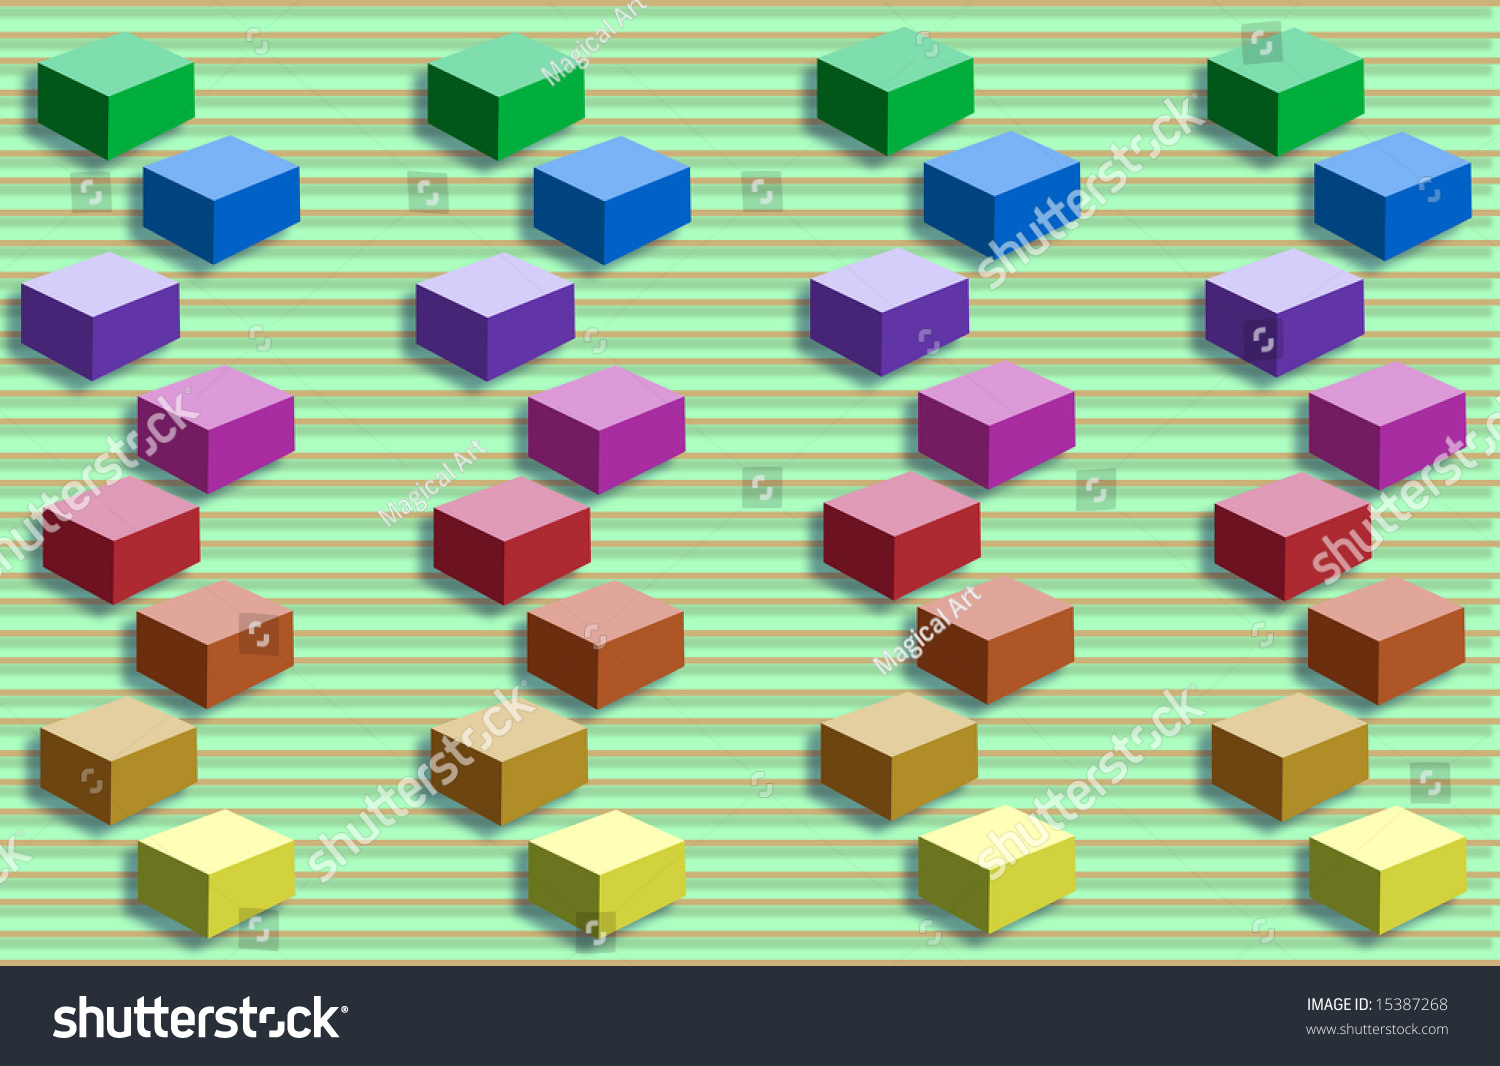 Cubes Arranged In Rows An Ascending Order Based On The Color Spectrum